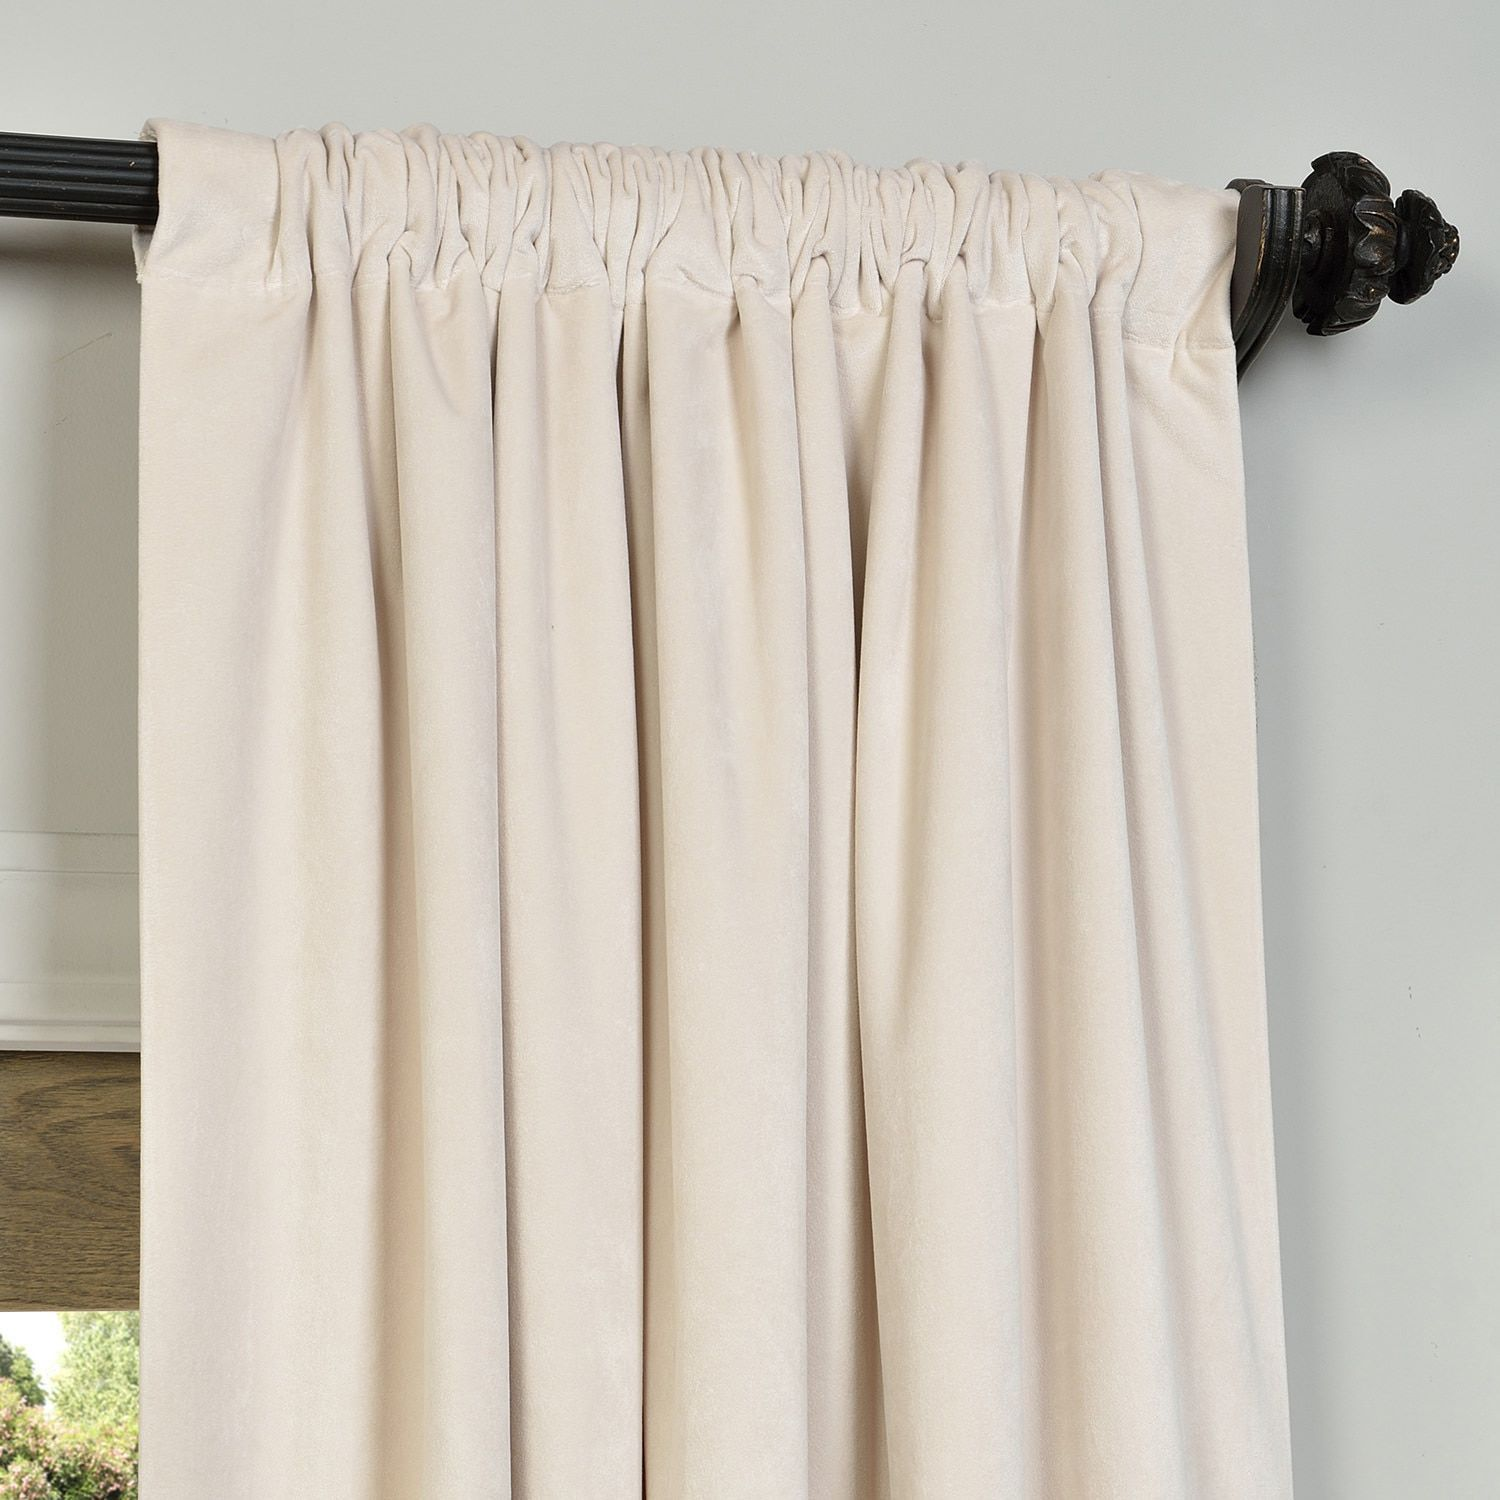 Blackout Curtains 90 X 54 Exclusive Fabrics Signature Ivory Velvet Blackout Curtain